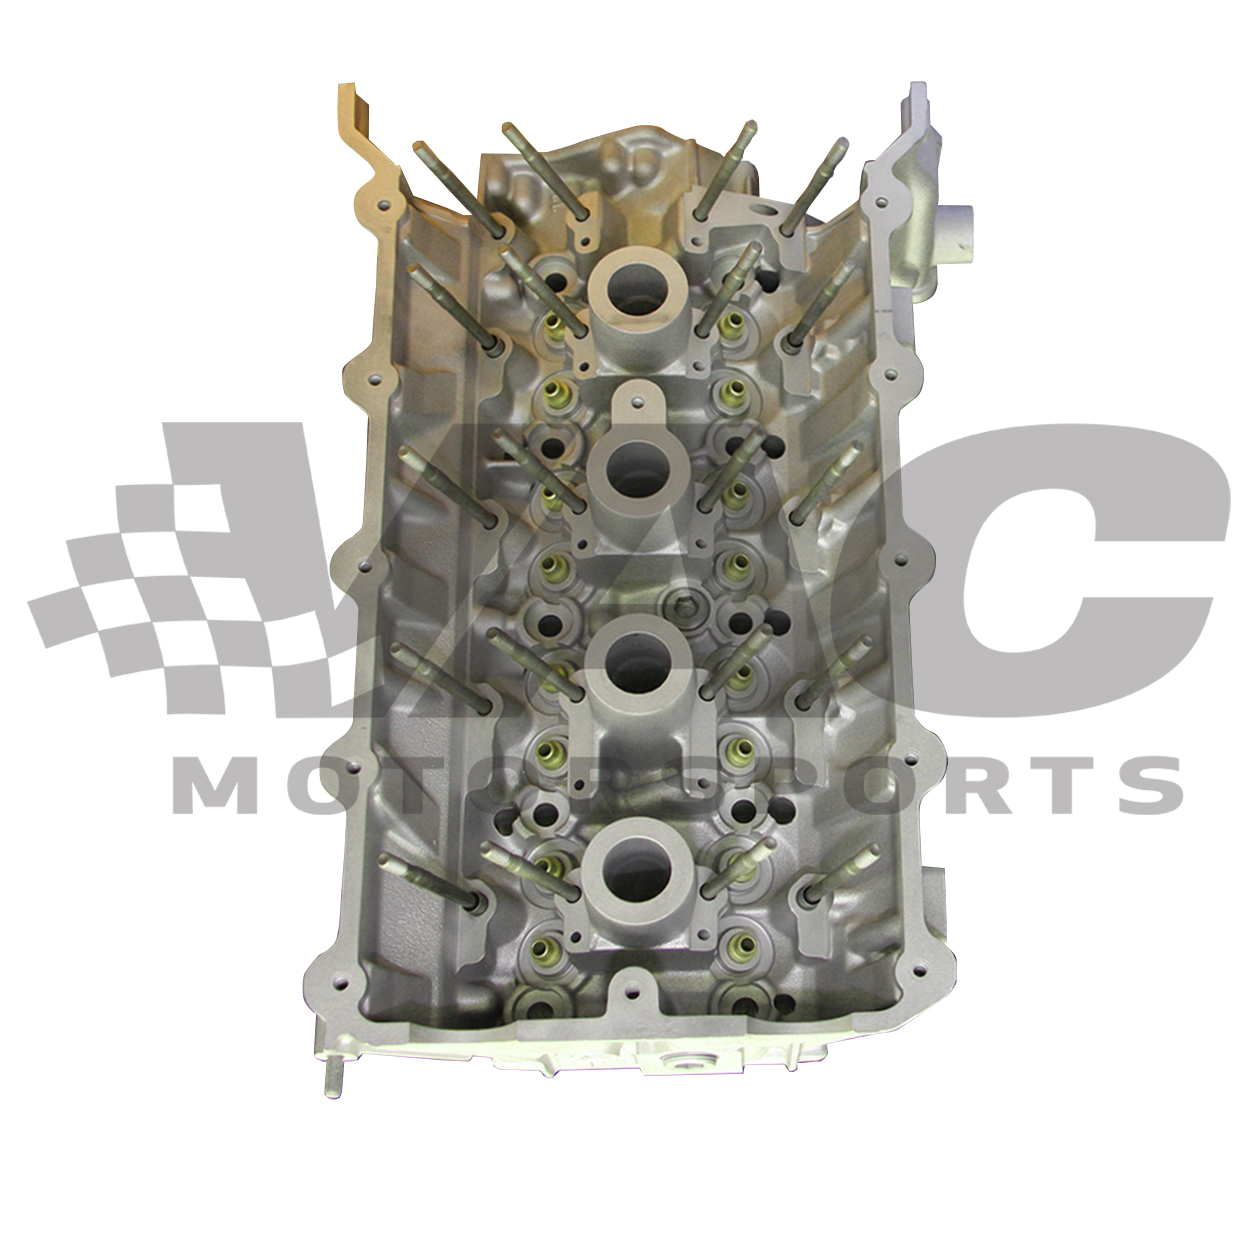 VAC - M44 Stage 2 Performance Cylinder Head THUMBNAIL